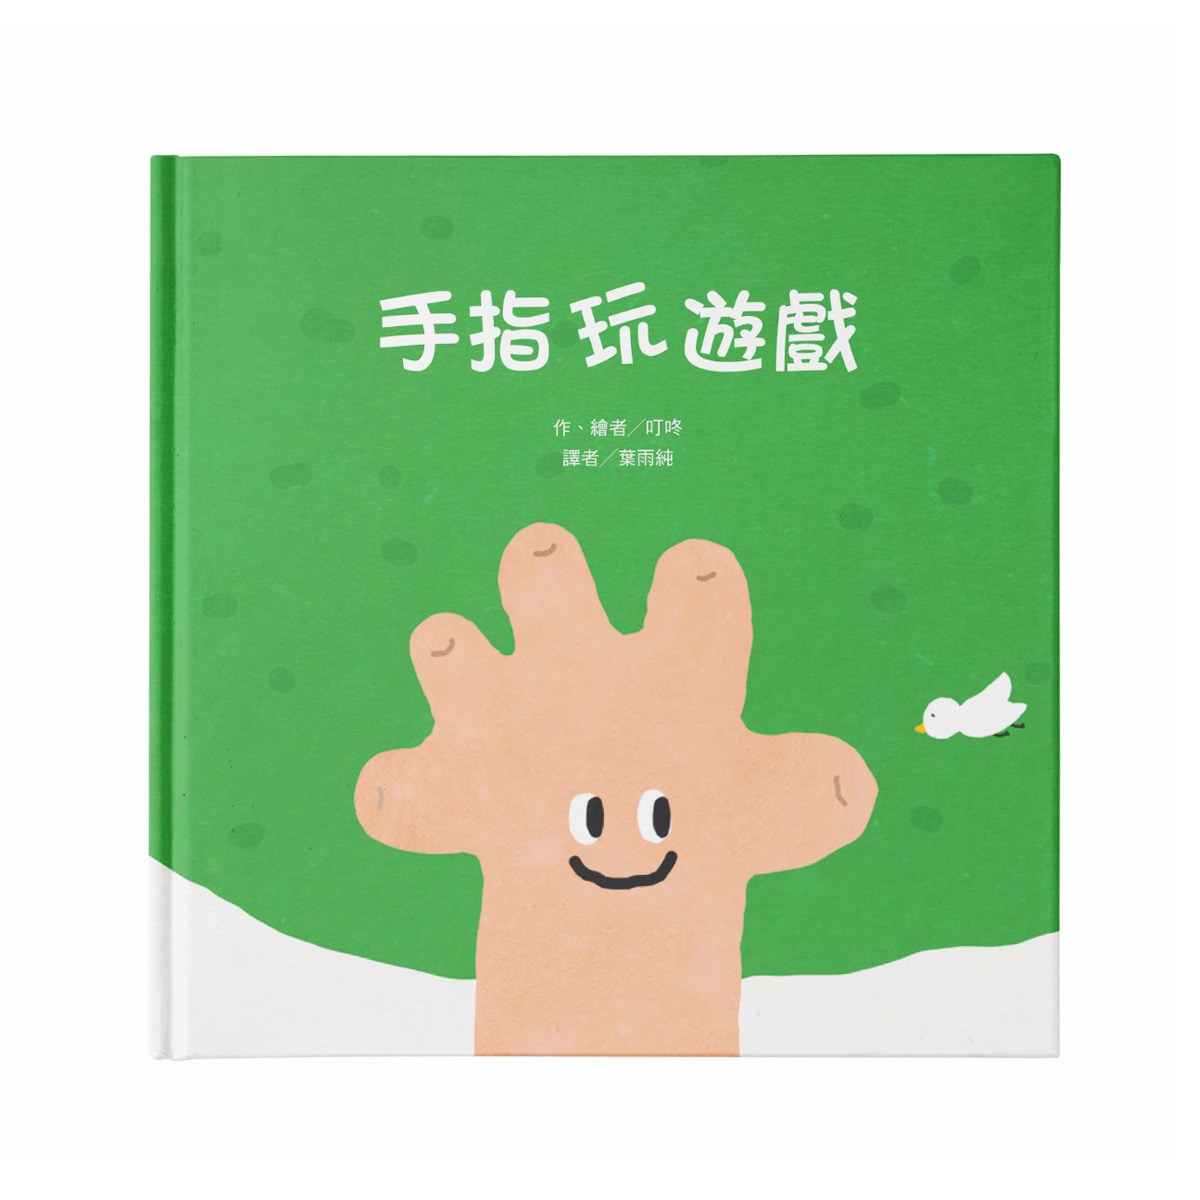 手指玩遊戲-Traditional Chinese Edition